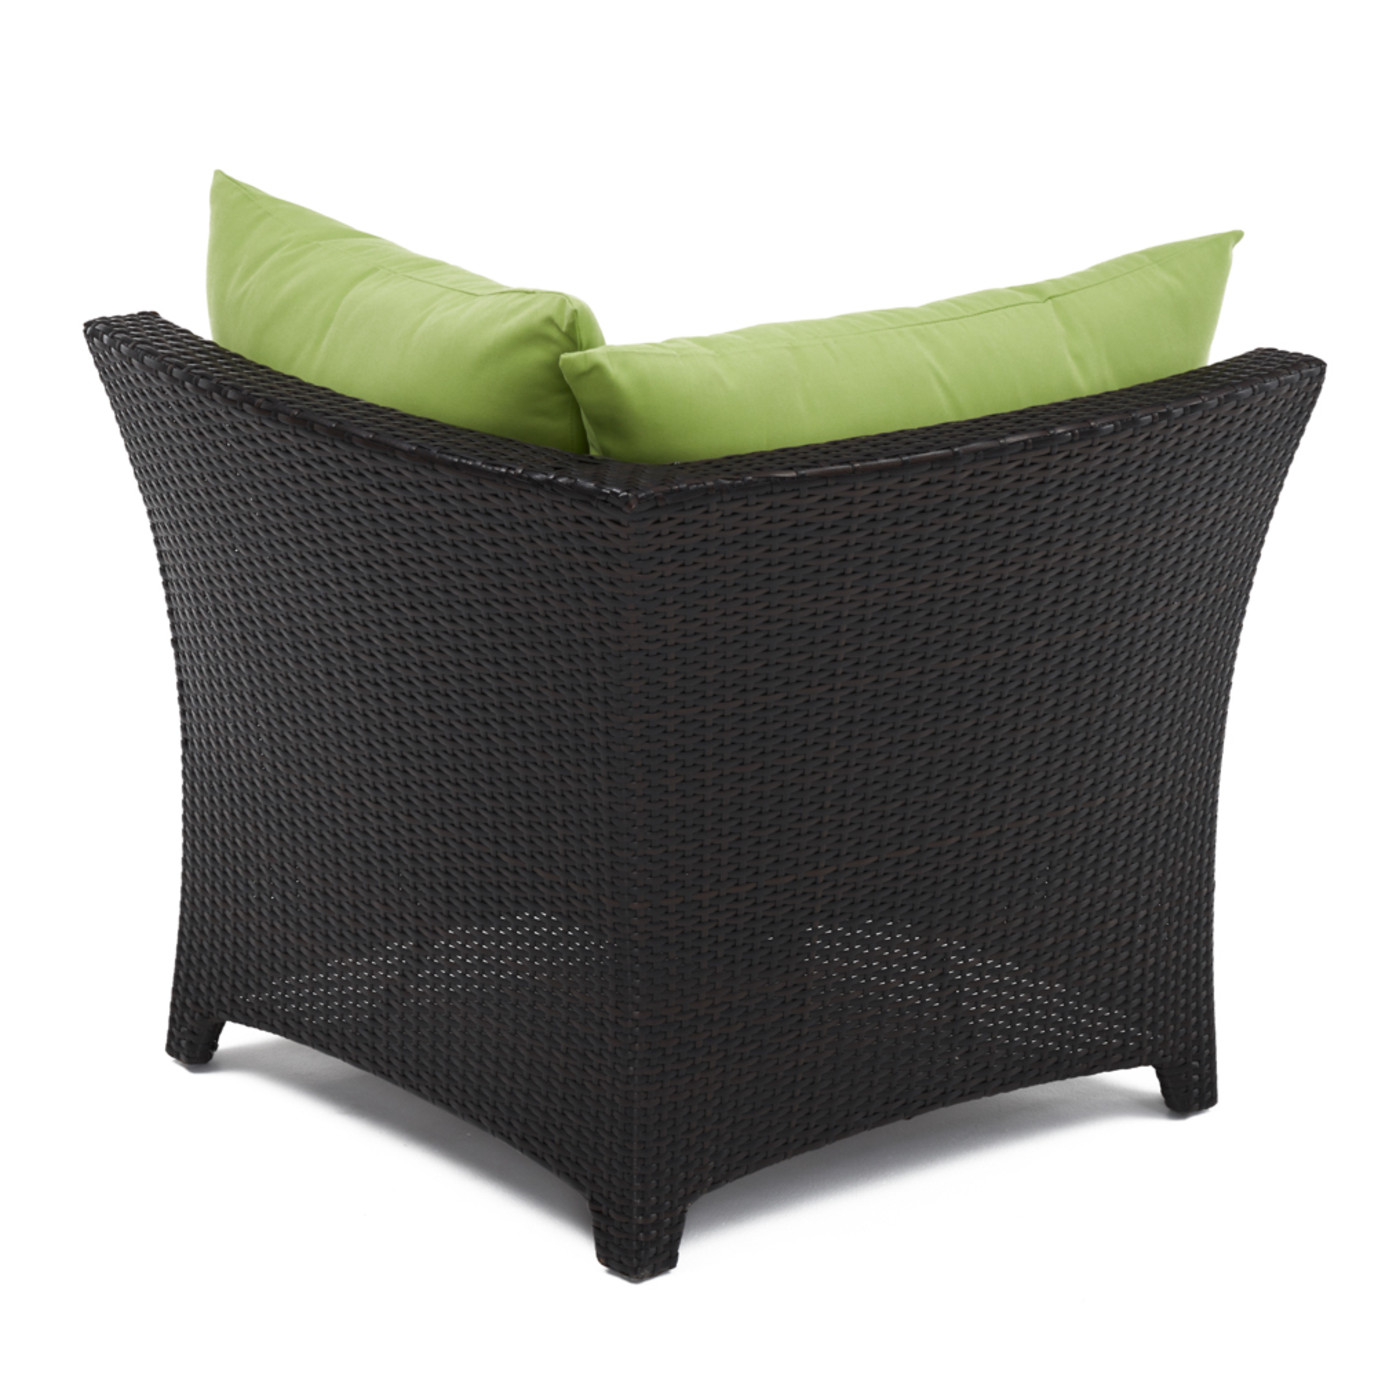 Deco™ Corner Chair - Ginkgo Green